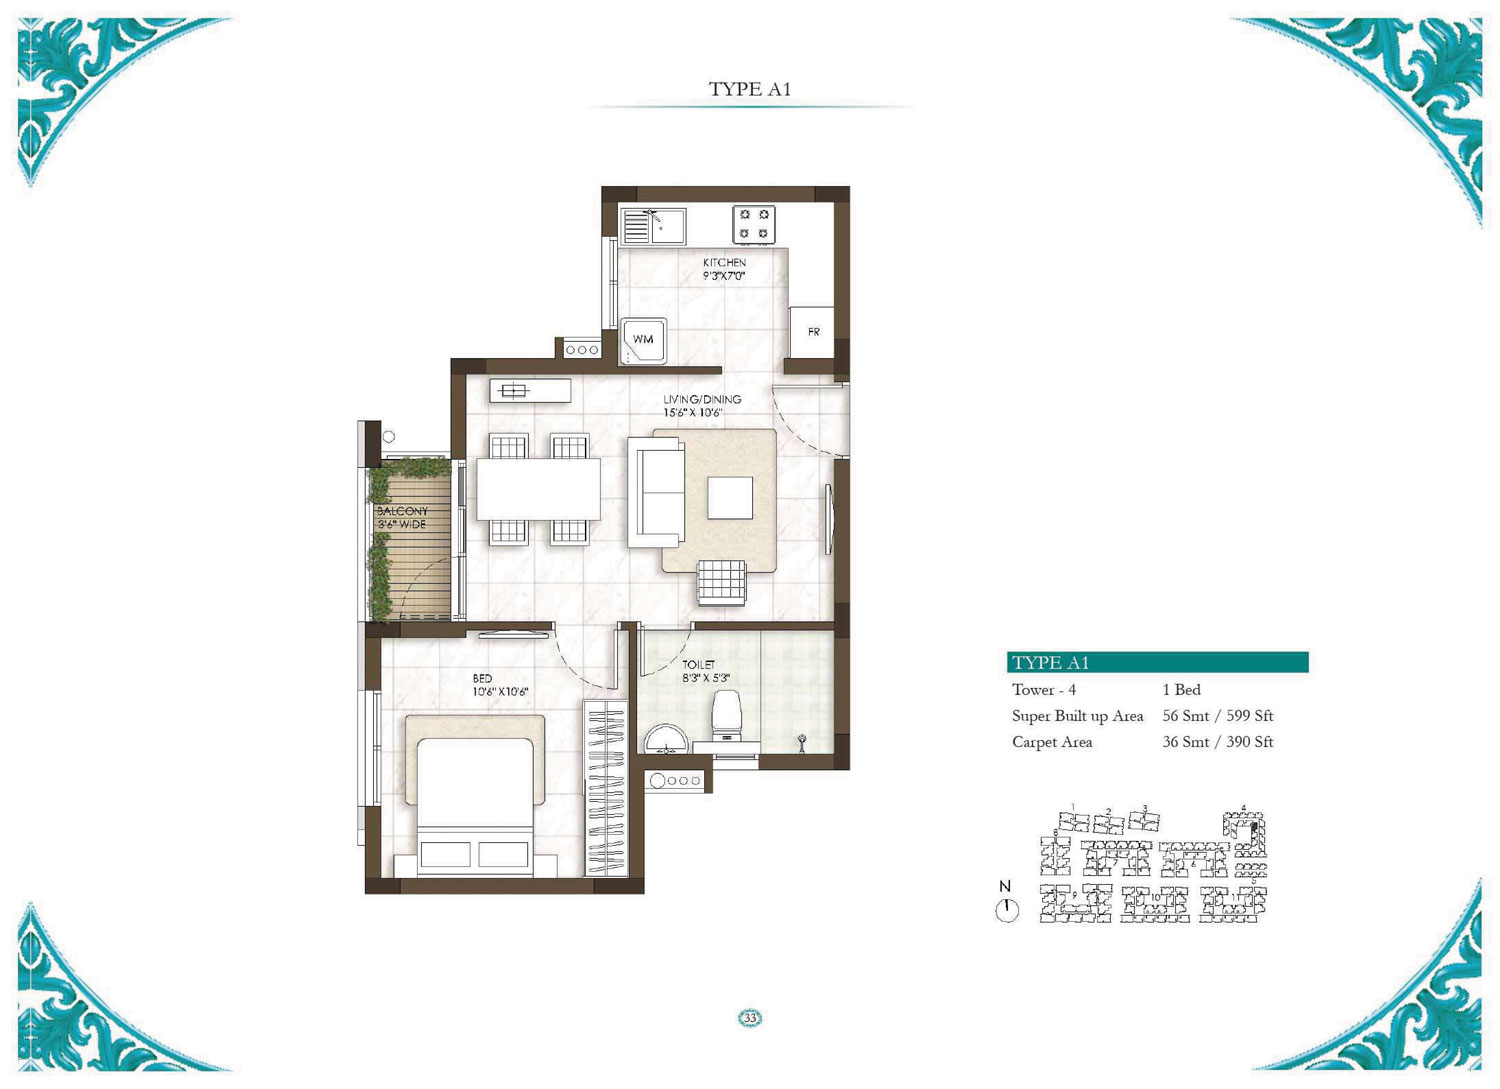 Type A1 - 1 Bed - 599 Sq Ft